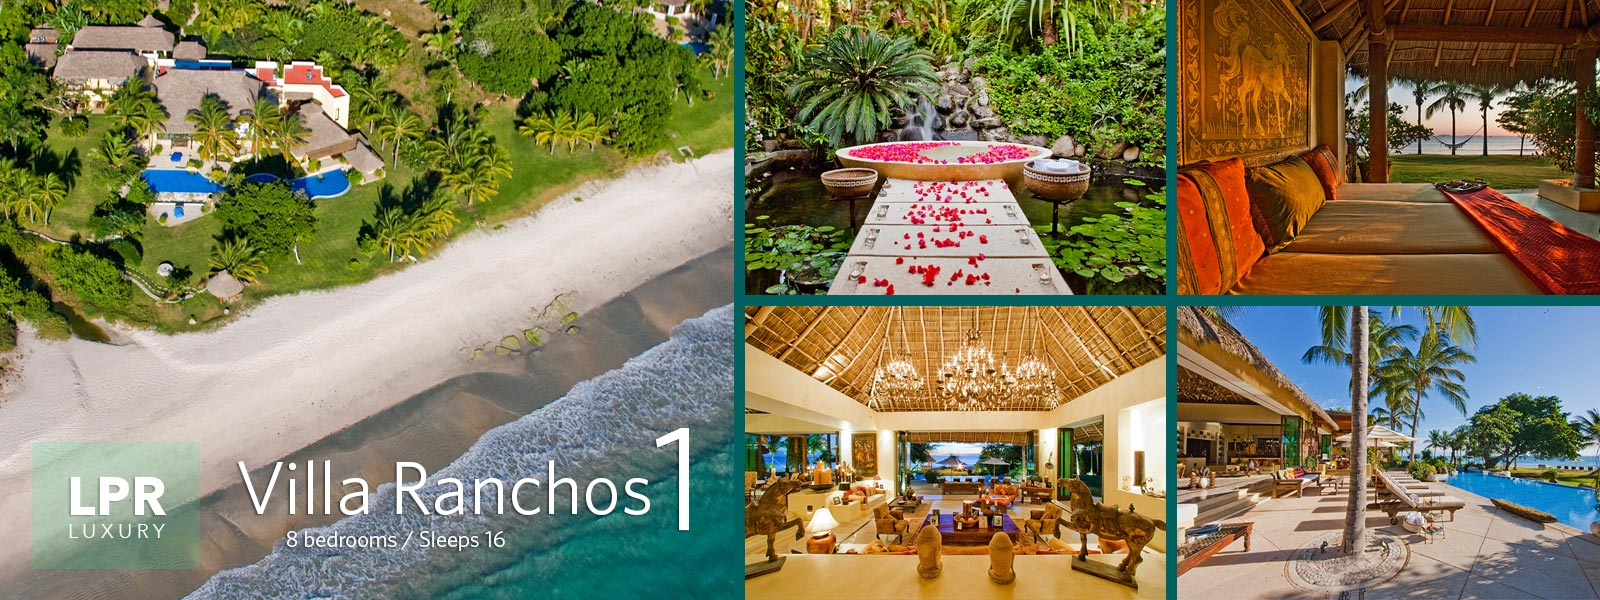 Casa Amore - Villa Ranchos 1 - Luxury Punta Mita Real Estate and Vacation Rentals Villas